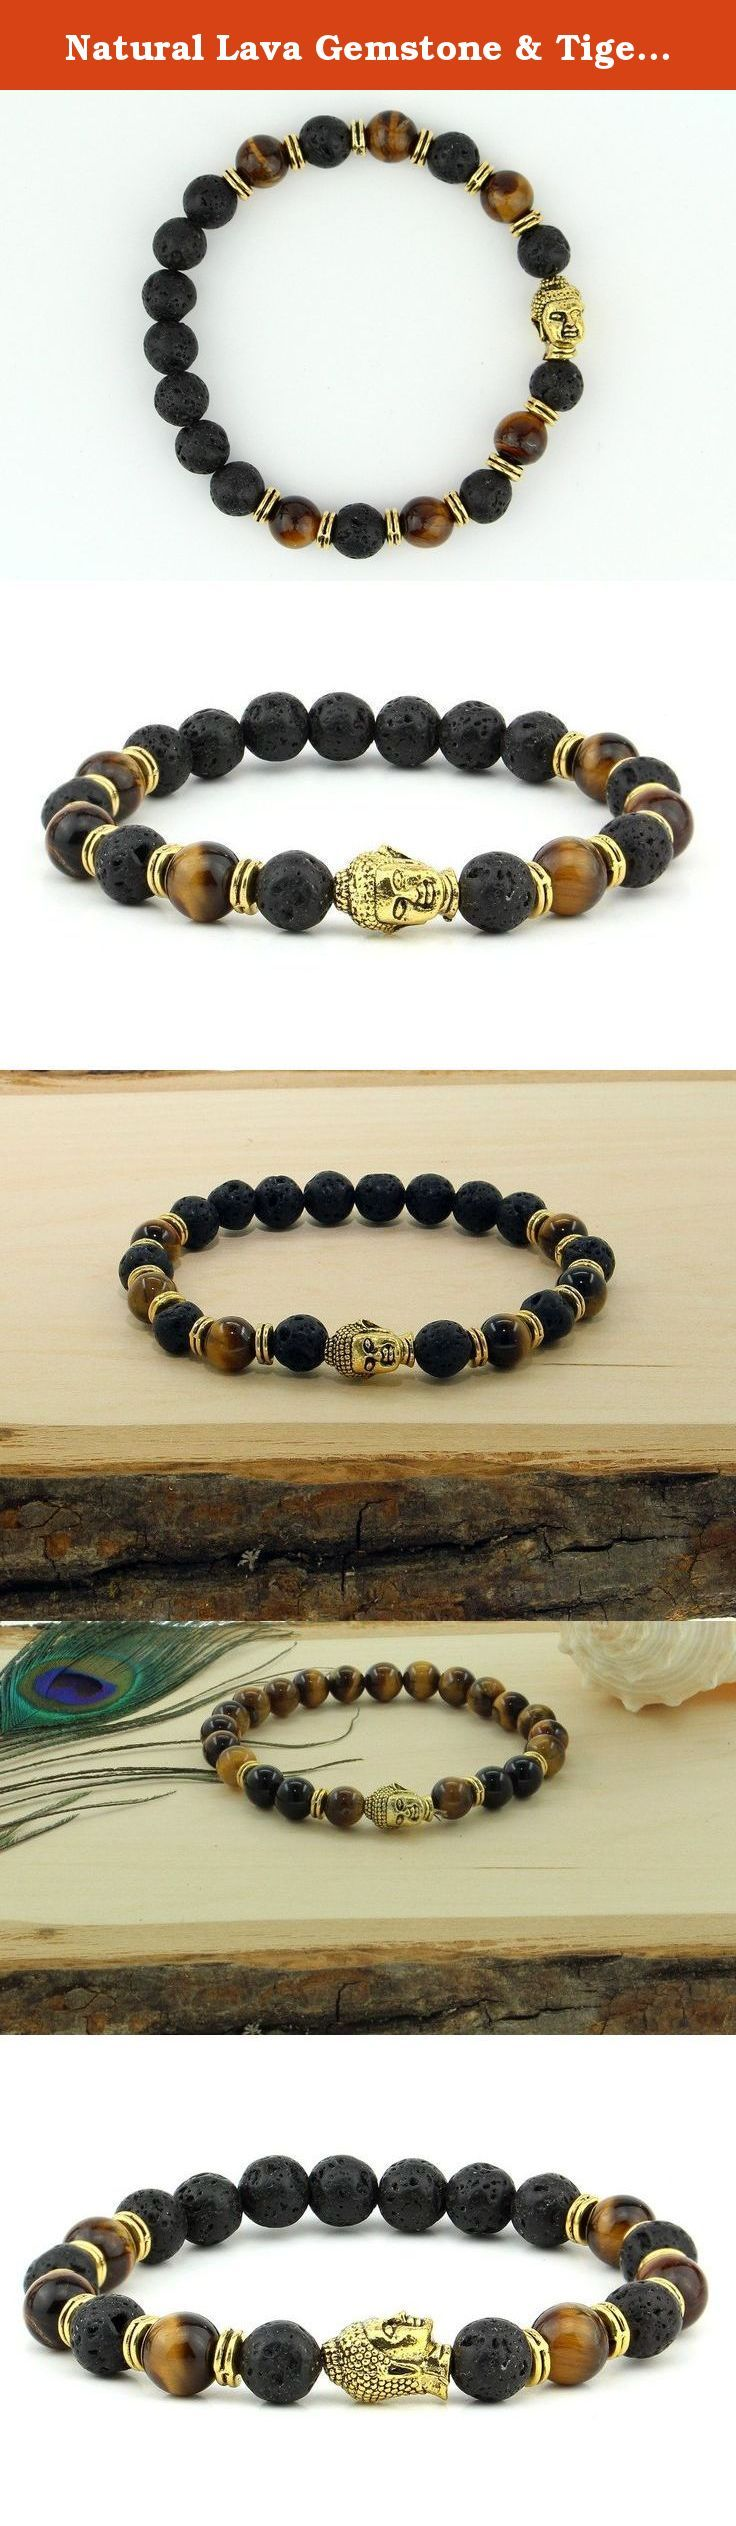 Natural Lava Gemstone & Tiger's Eye Bead Golden Buddha Stretchable Yoga Bracelet Fits All Men Women. This is a beautiful stretchable bracelet which features 13 8mm real earth mined Volcanic Lava Stones Beads, 6 Tiger'e Eye and Golden Buddha face all woven into durable elastic band, which fits all men & women. Made from 8mm genuine volcano black lava beads on stretchable elastic band. If you are looking for Men's bracelet, then this one will be a perfect item for you. *.